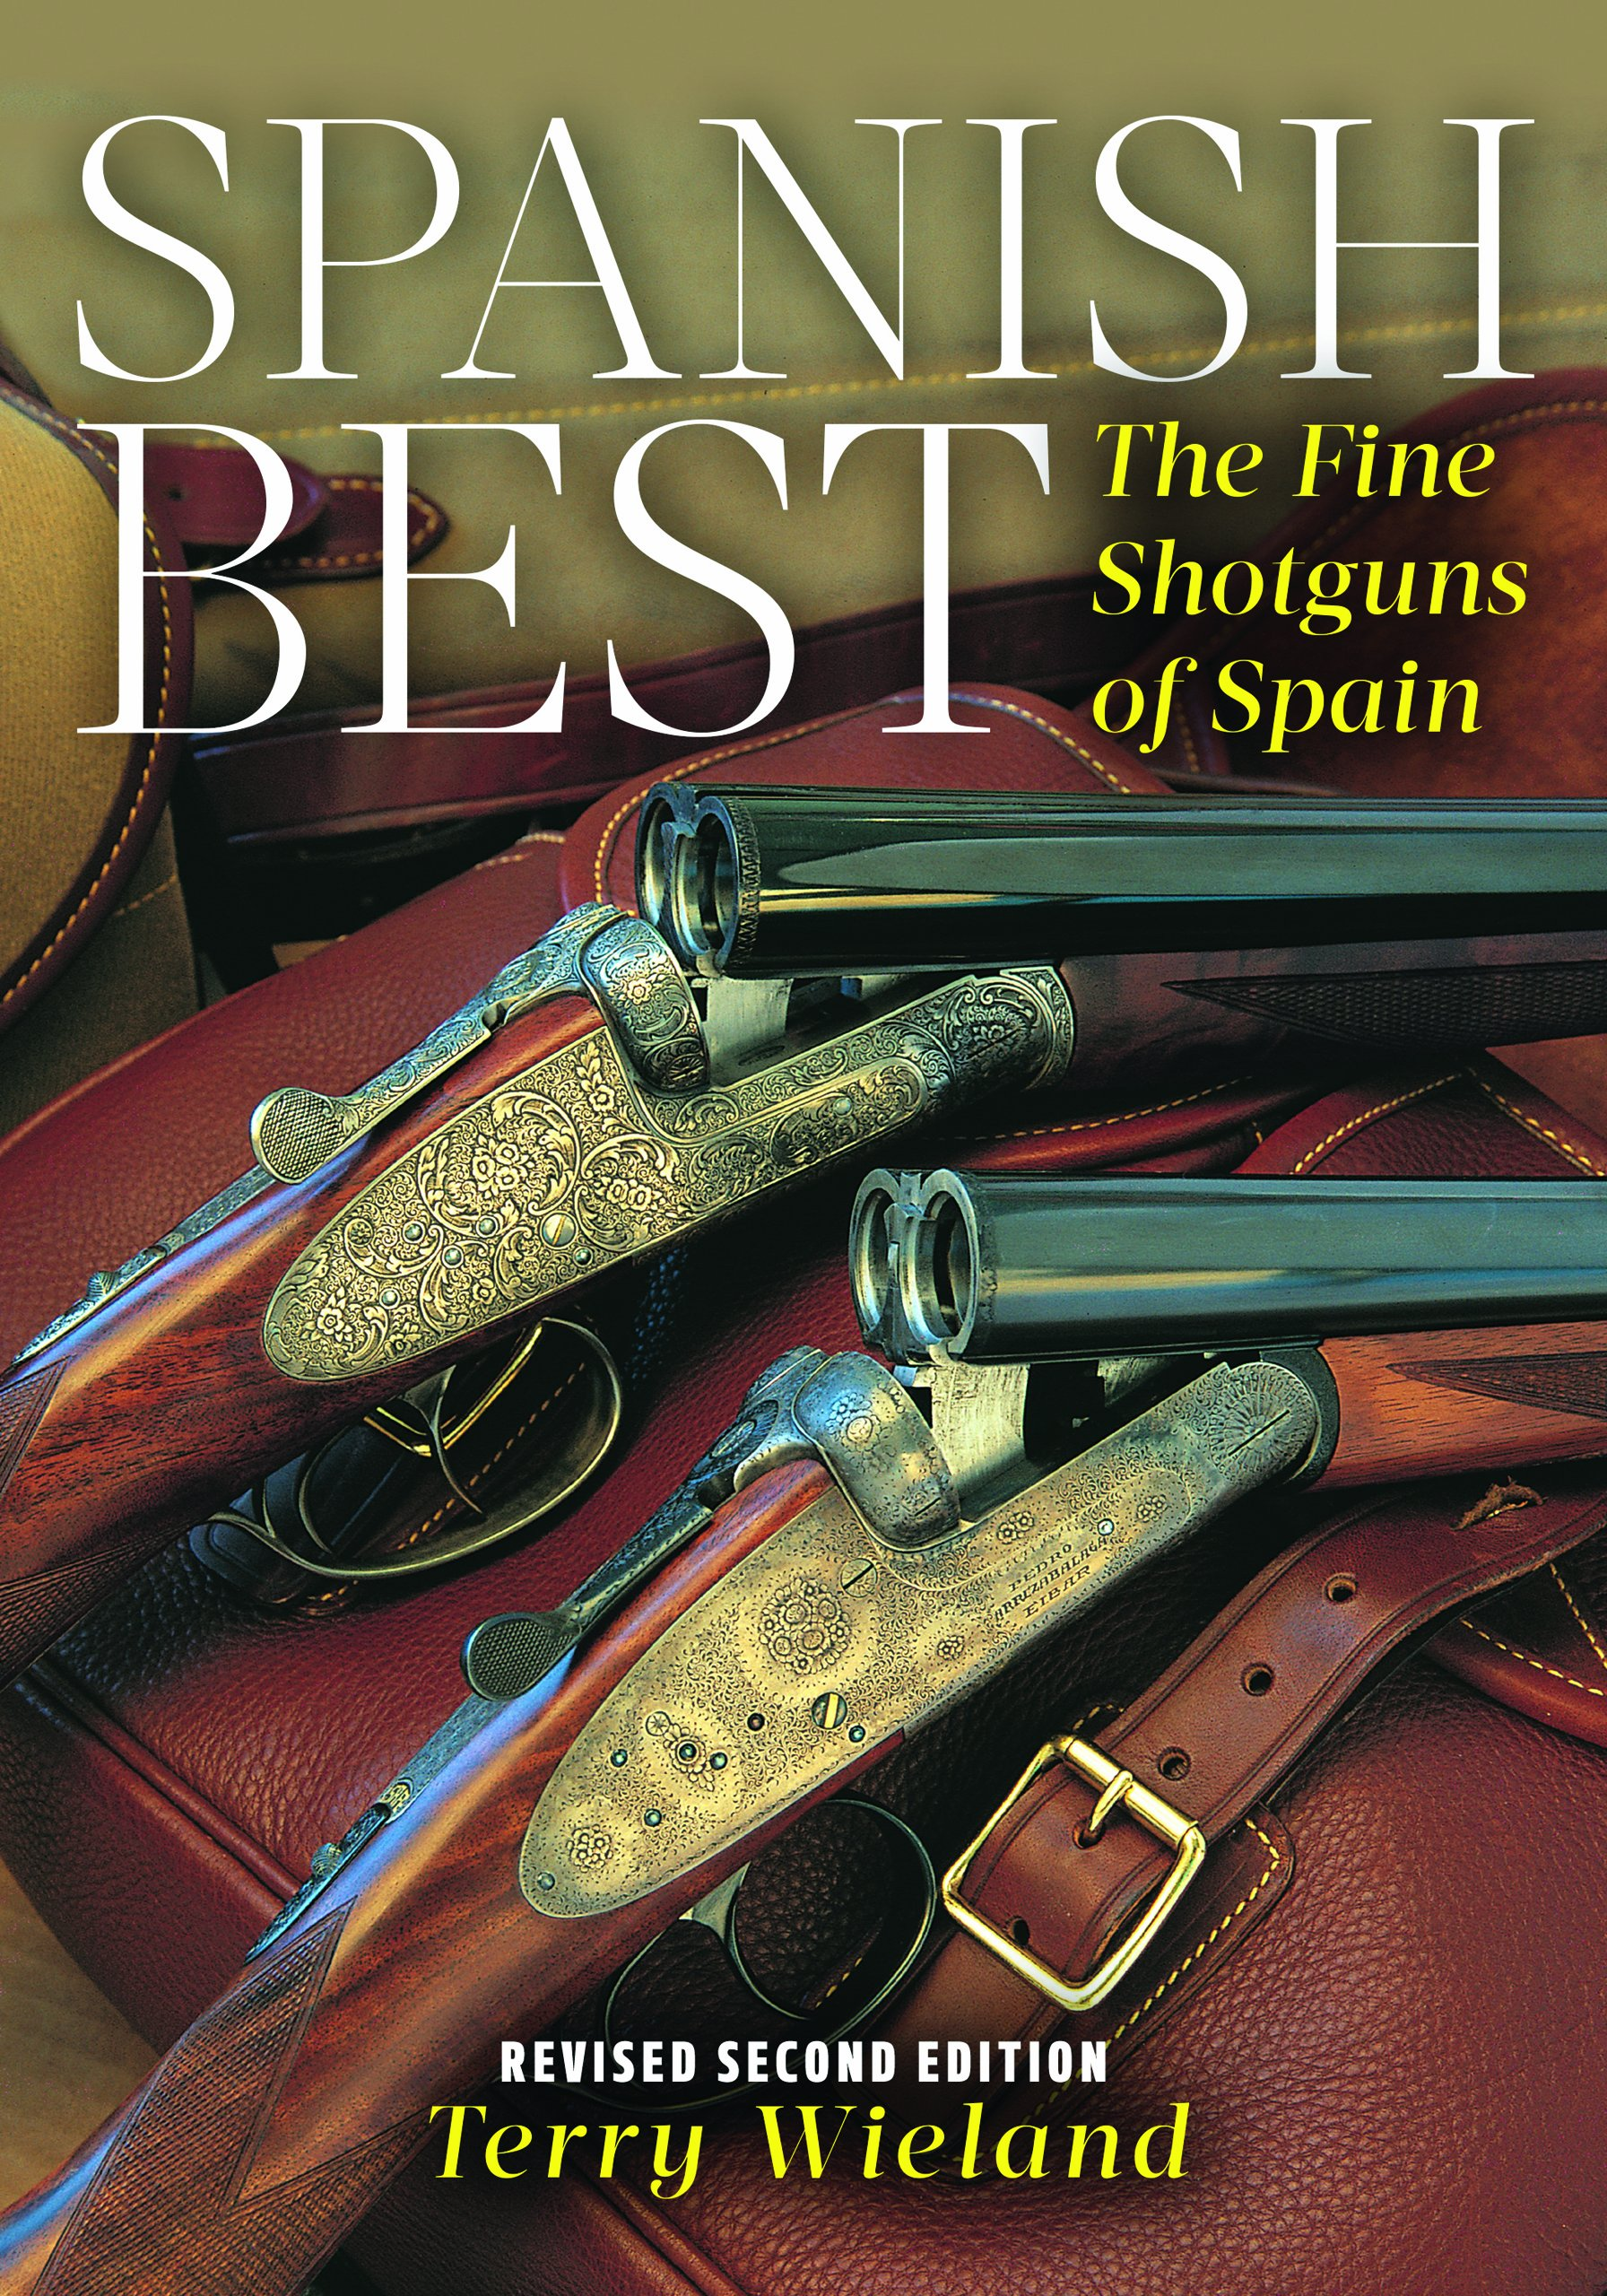 Spanish Best: The Fine Shotguns of Spain